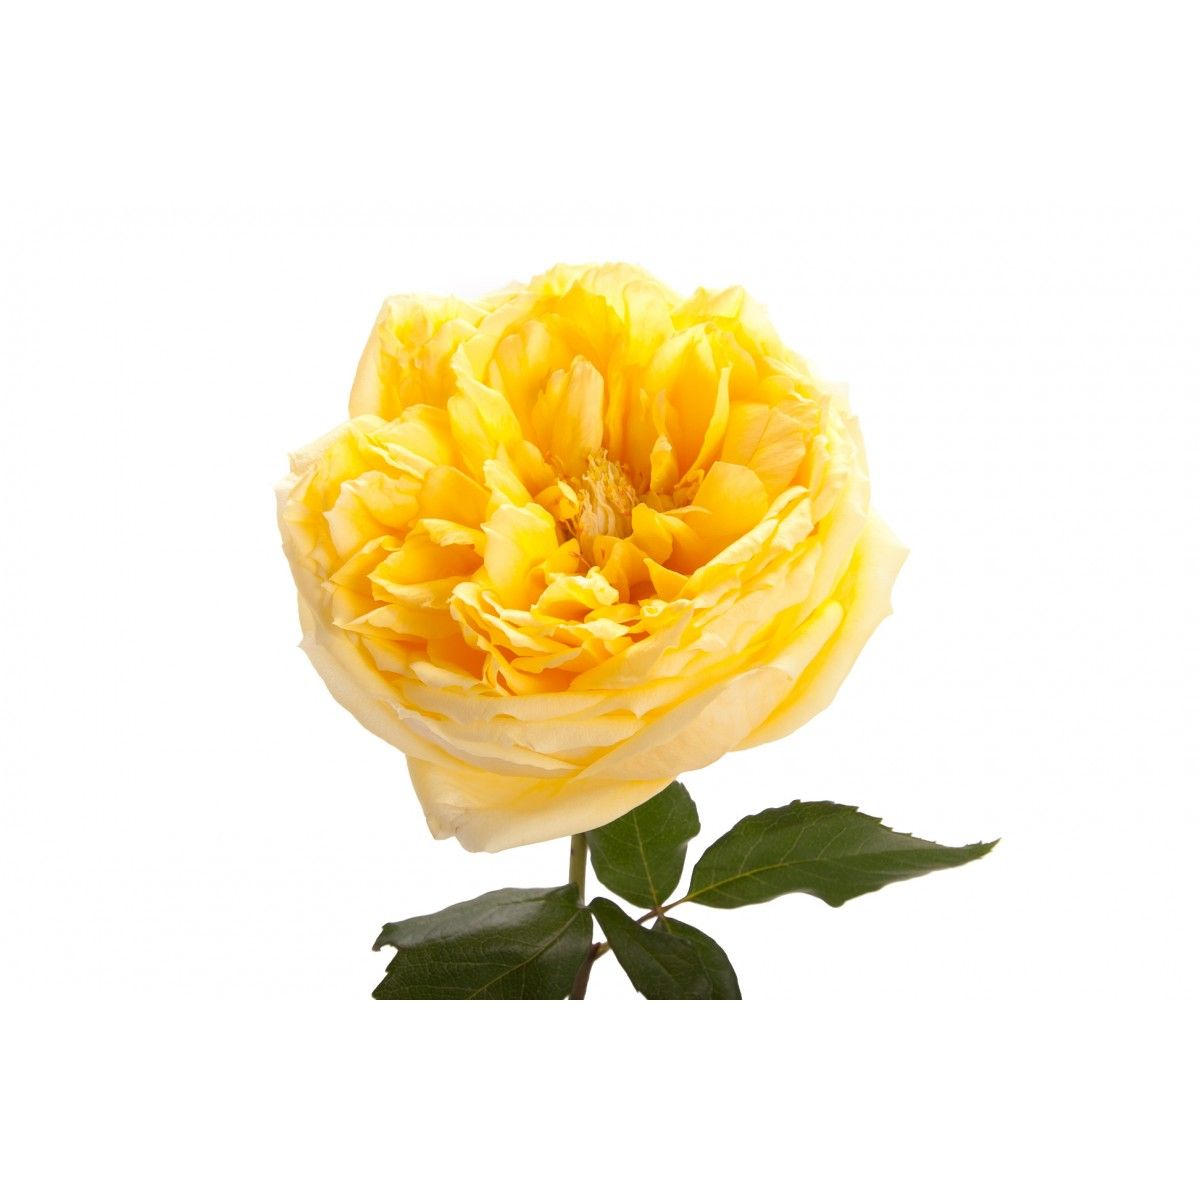 Yellow Garden Rose Toulouse Lautrec Roses Types Of Flowers Rose Varieties Types Of Flowers Fall Wedding Flowers